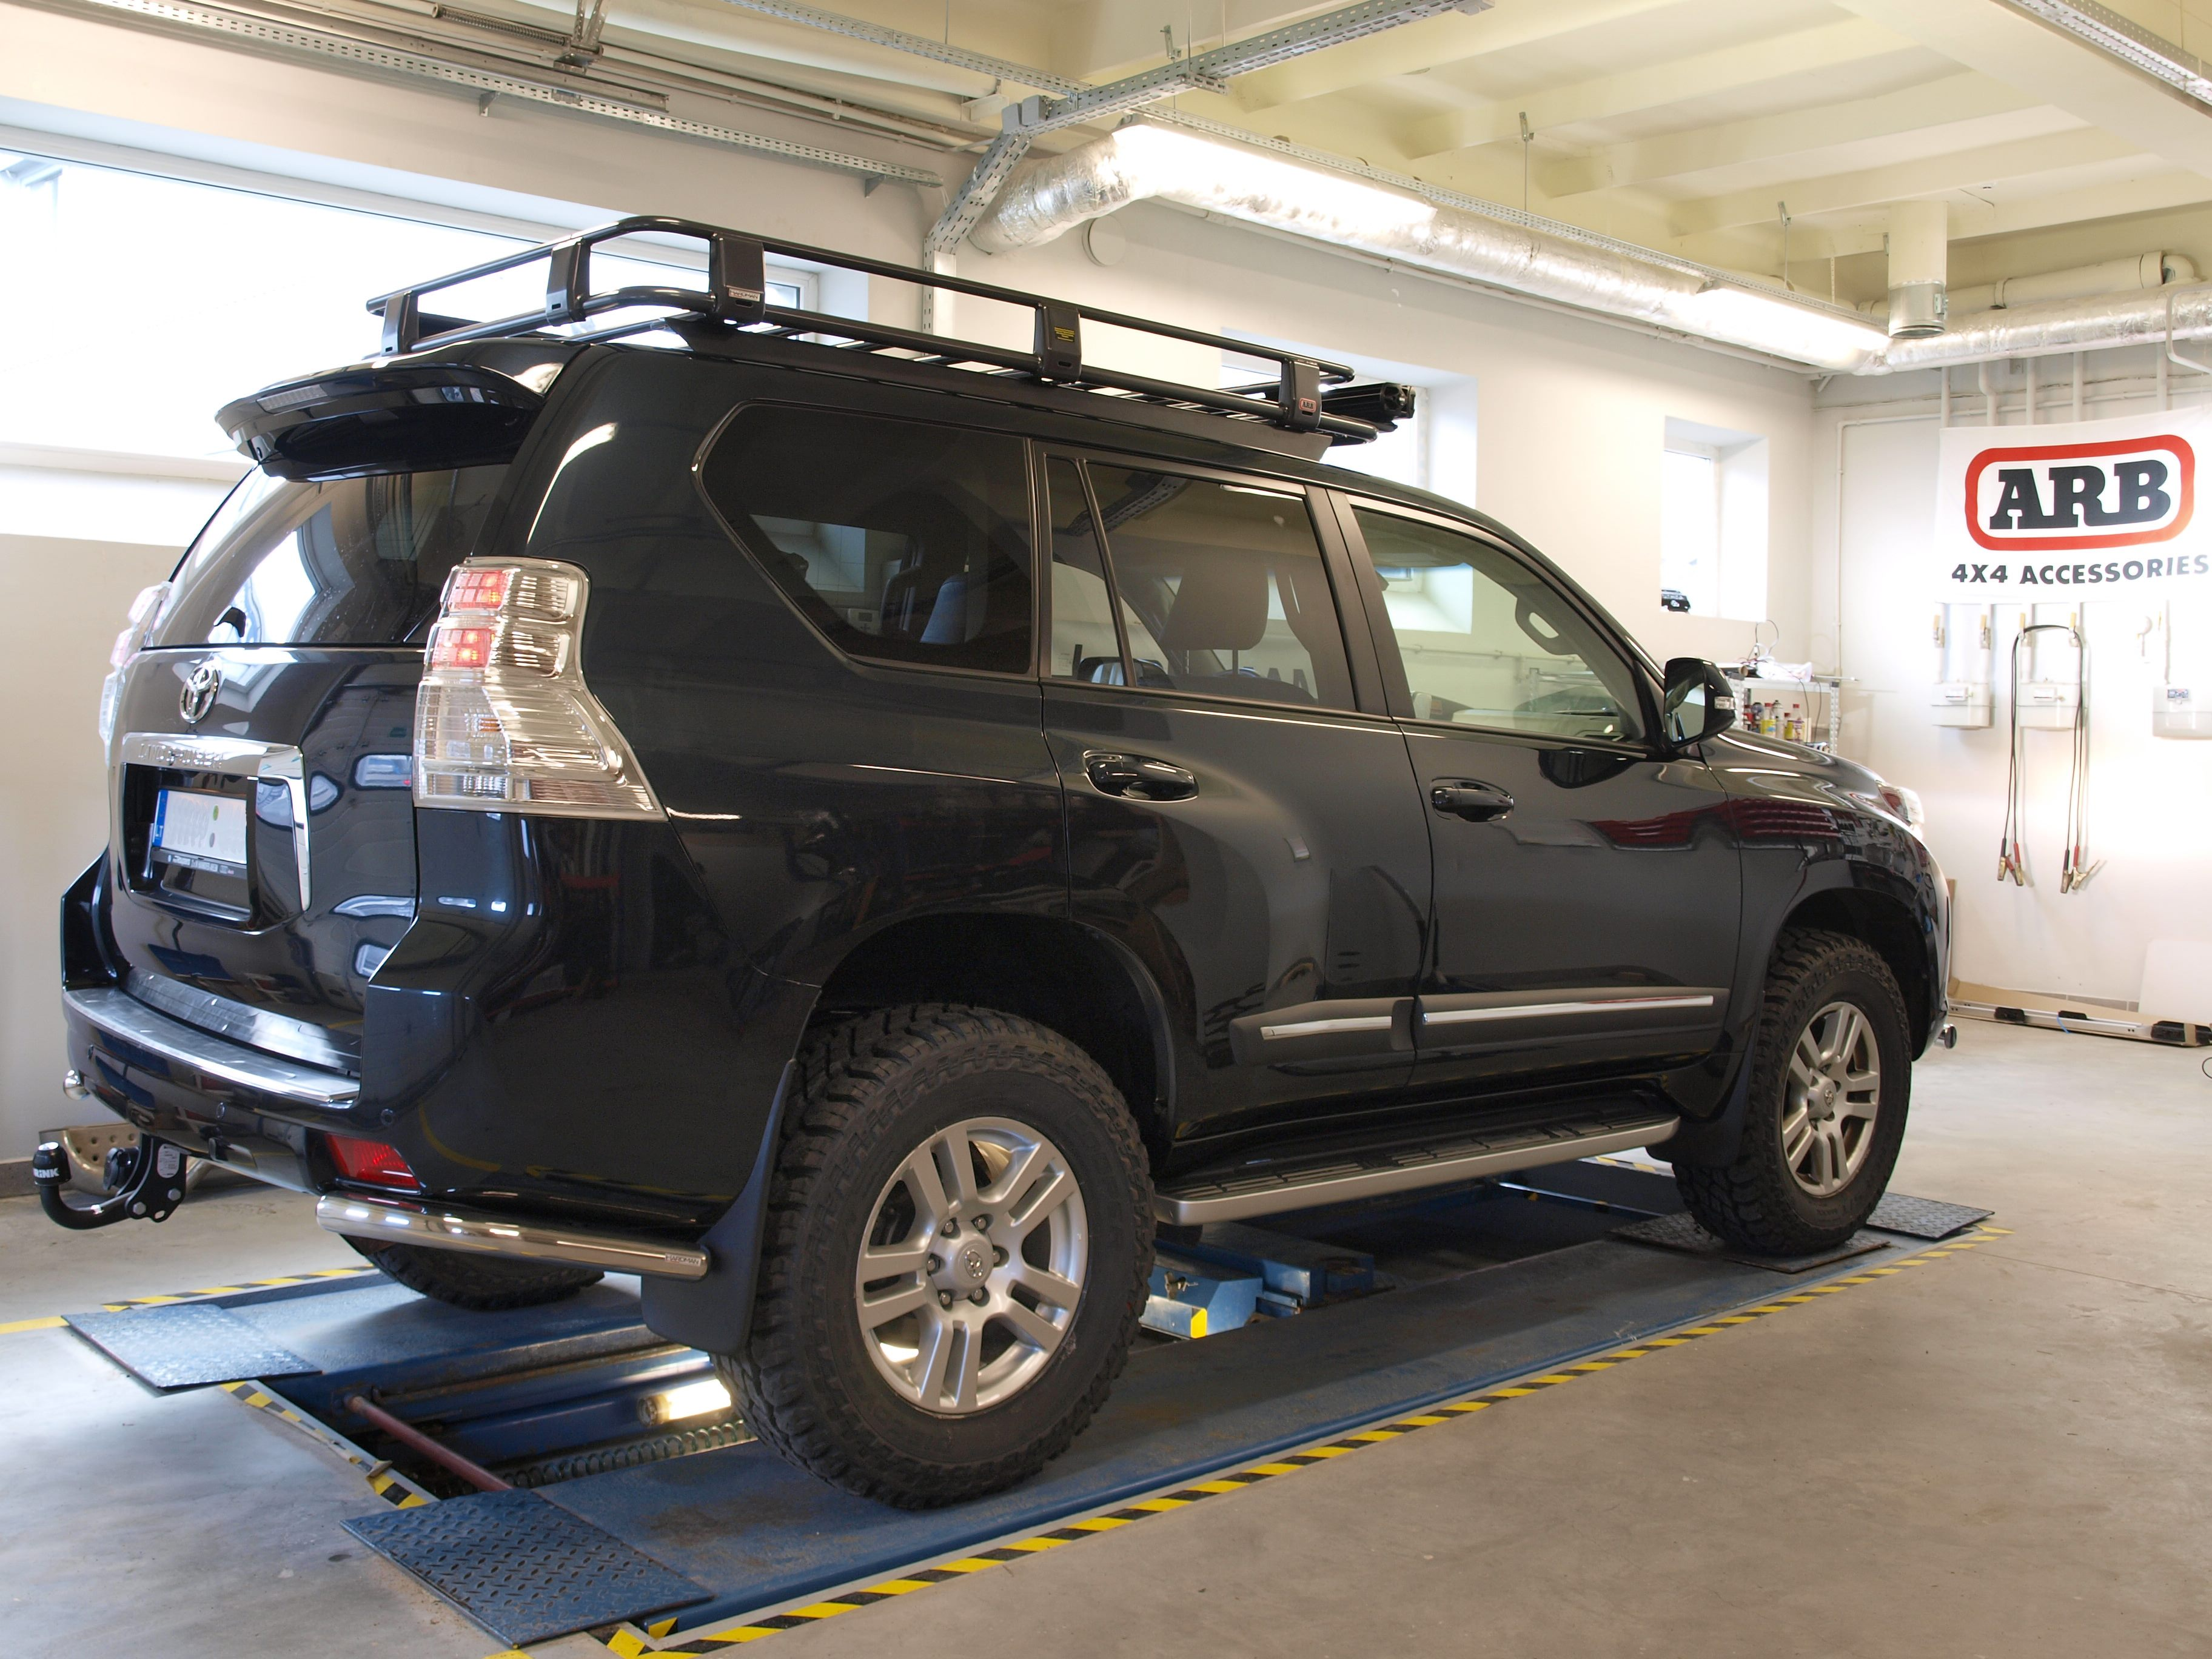 Hardman Tuning Arb Roof Rack Toyota Lc150 2009 Online Shop Land Cruiser